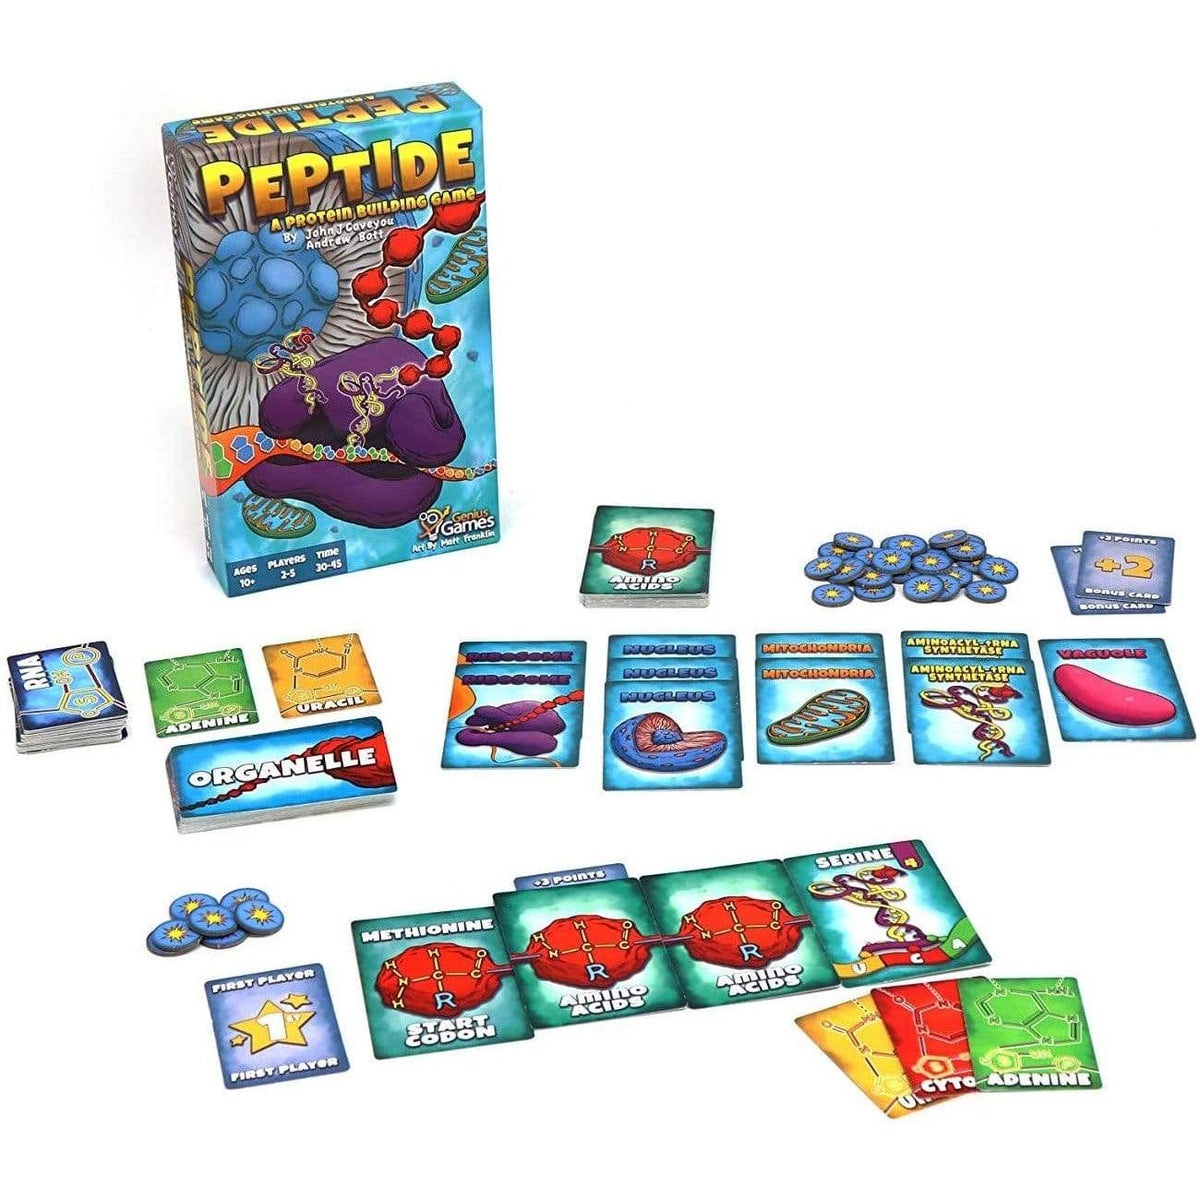 Peptide: A Protein Building Game Genius Games Board Games